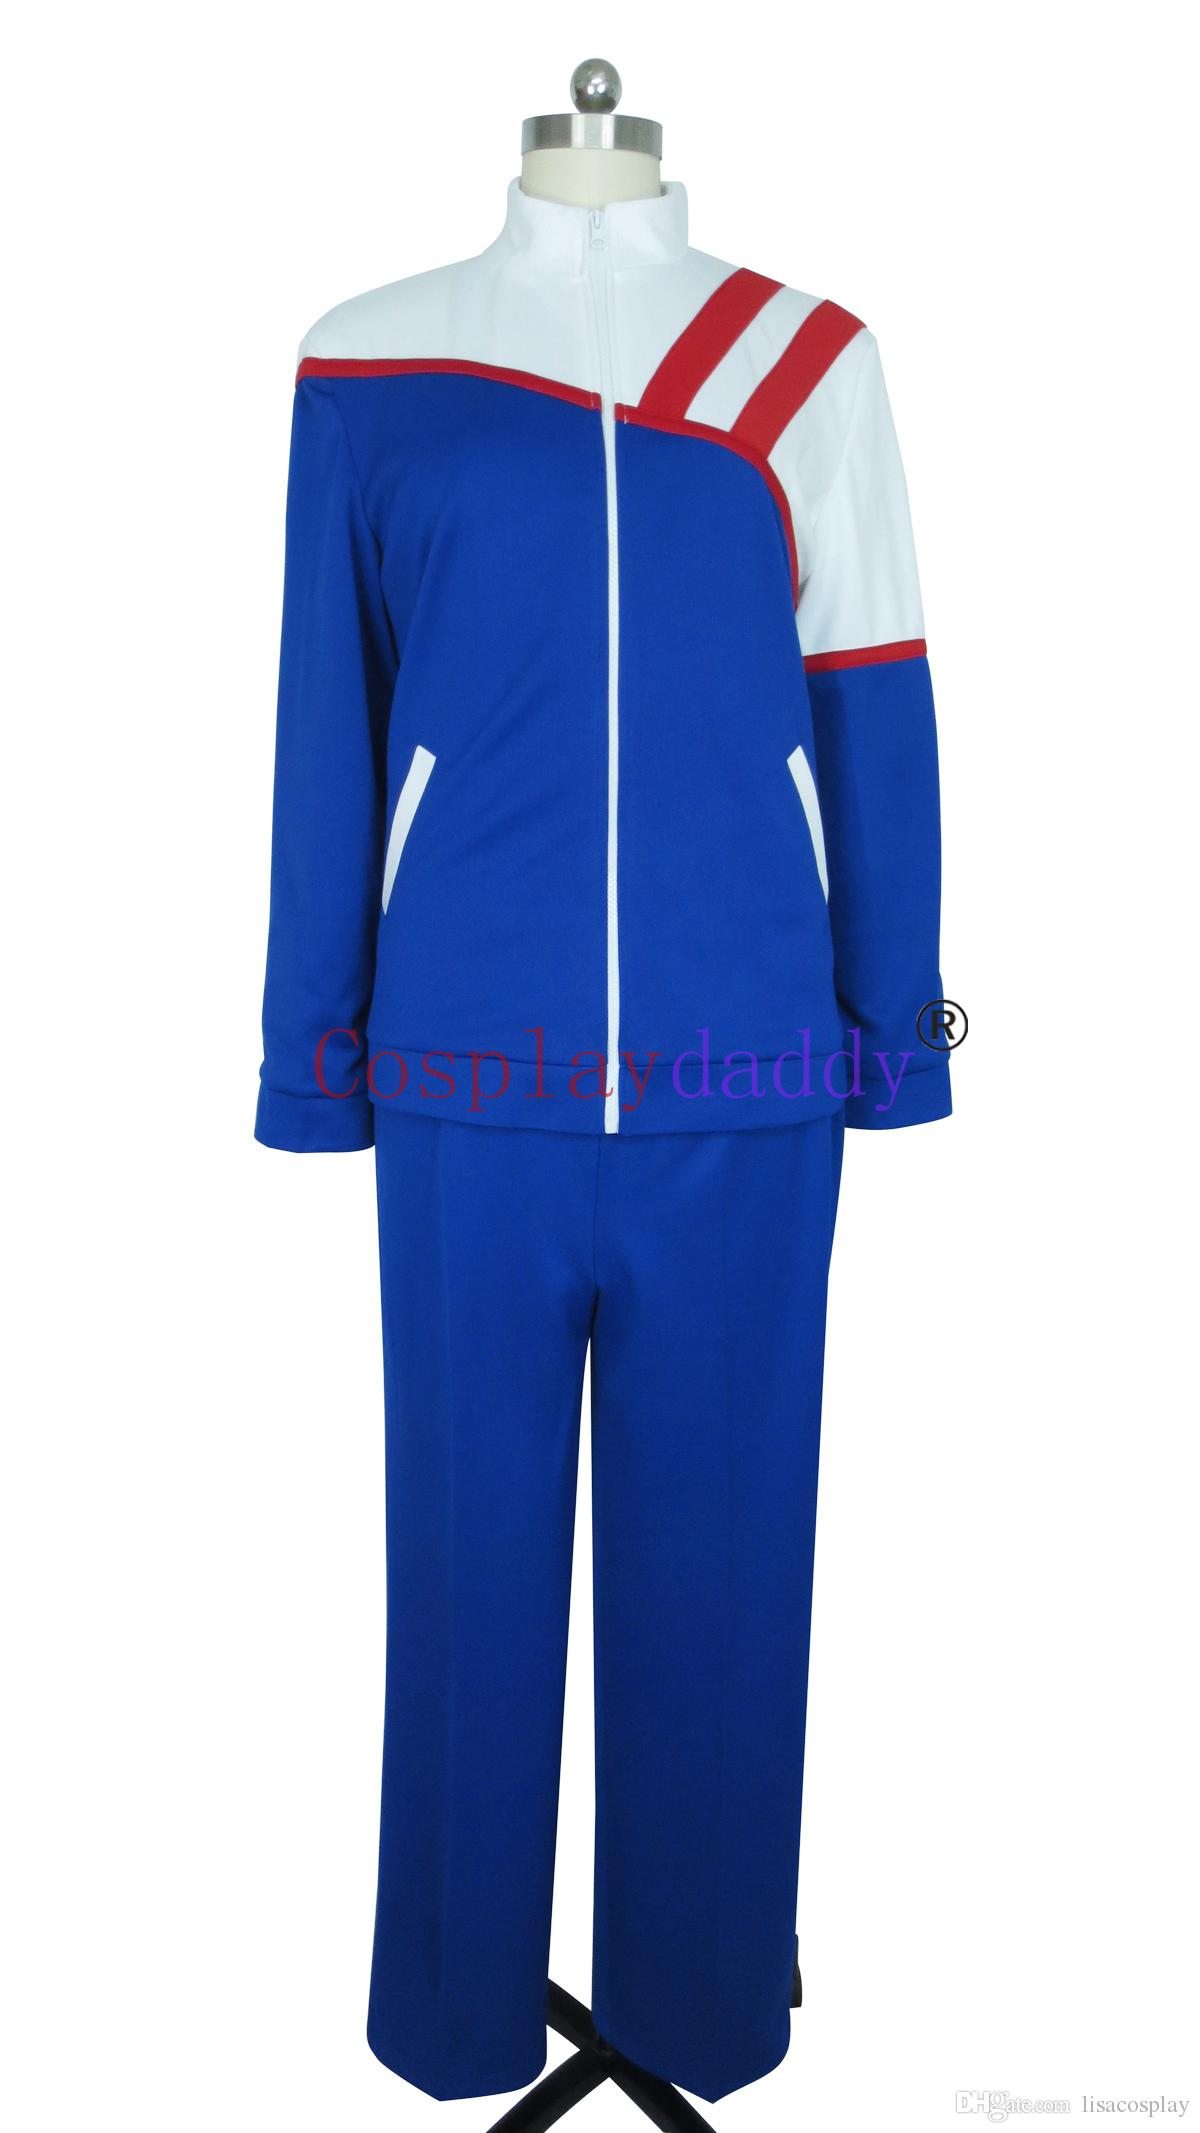 Inazuma Eleven Cosplay United States Team Uniform H008 Cosplay Costumes For  Couples Anime Sexy Costumes From Lisacosplay b13a4286296e